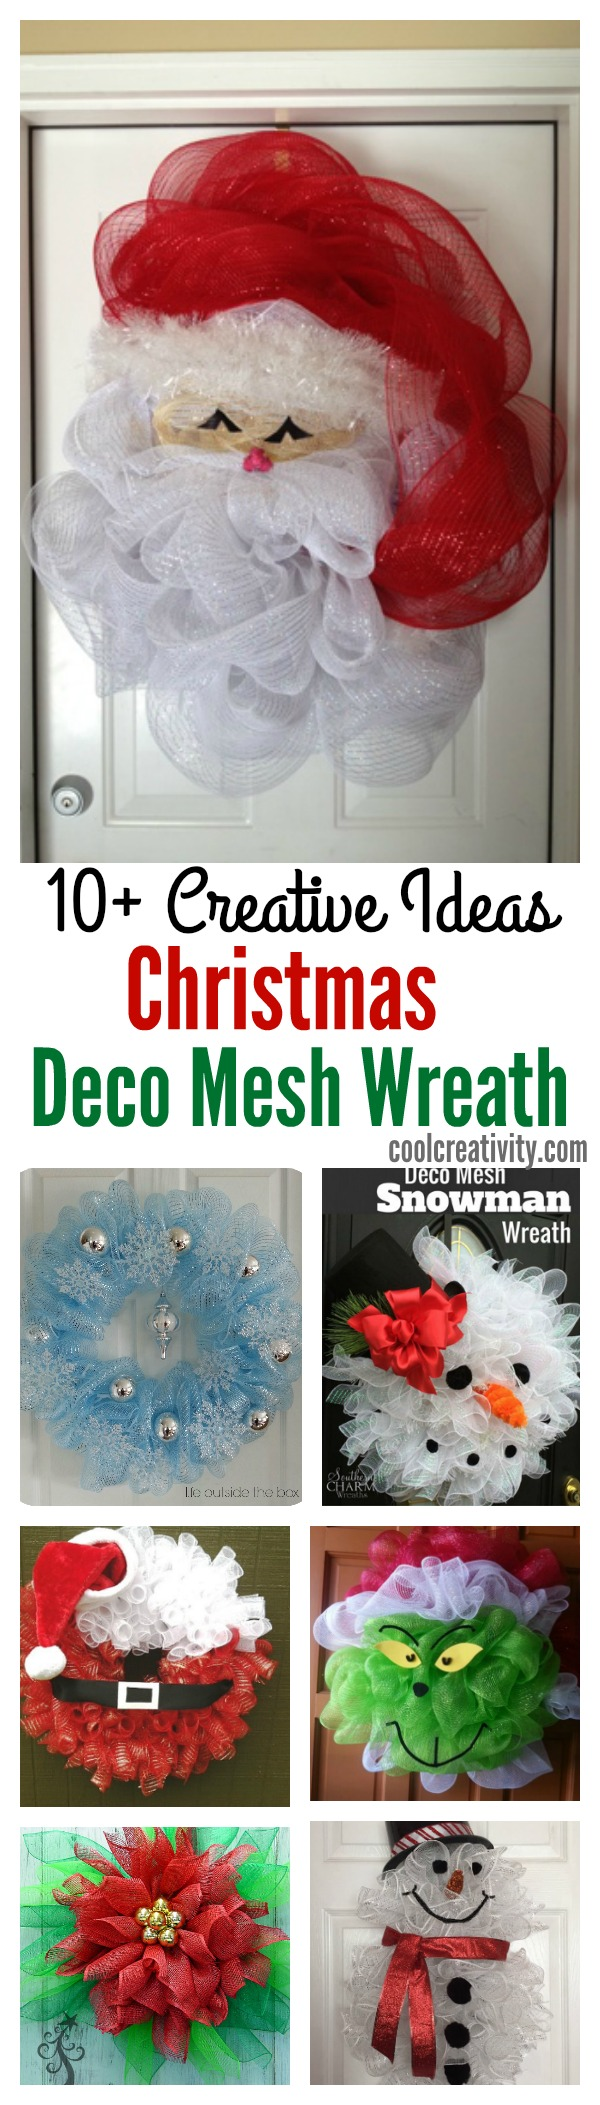 10 creative christmas deco mesh wreath ideas. Black Bedroom Furniture Sets. Home Design Ideas